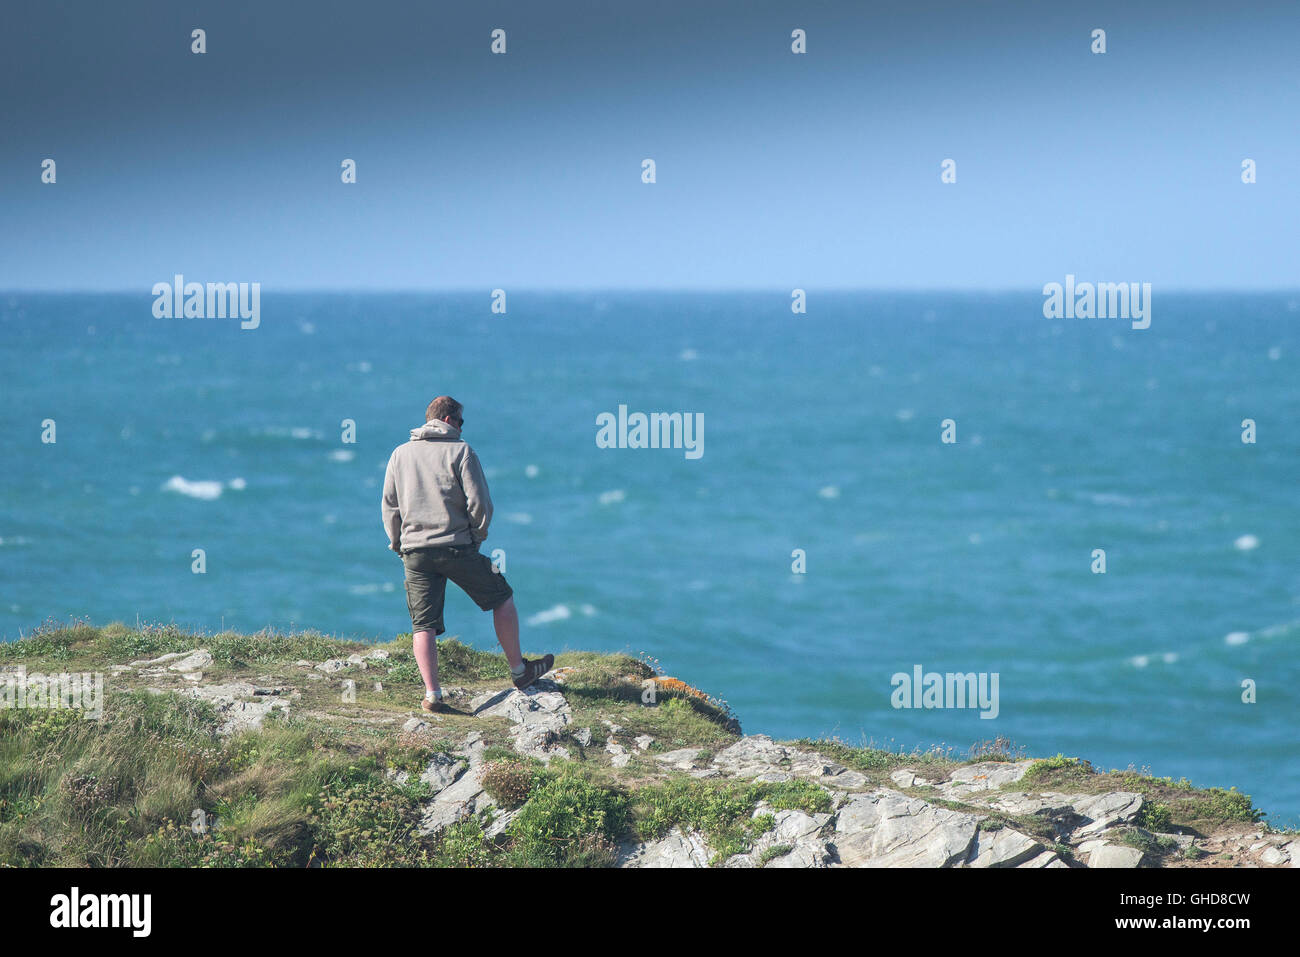 A holidaymaker enjoys the view as he stands on the rocks of Towan Headland in Newquay, Cornwall. - Stock Image